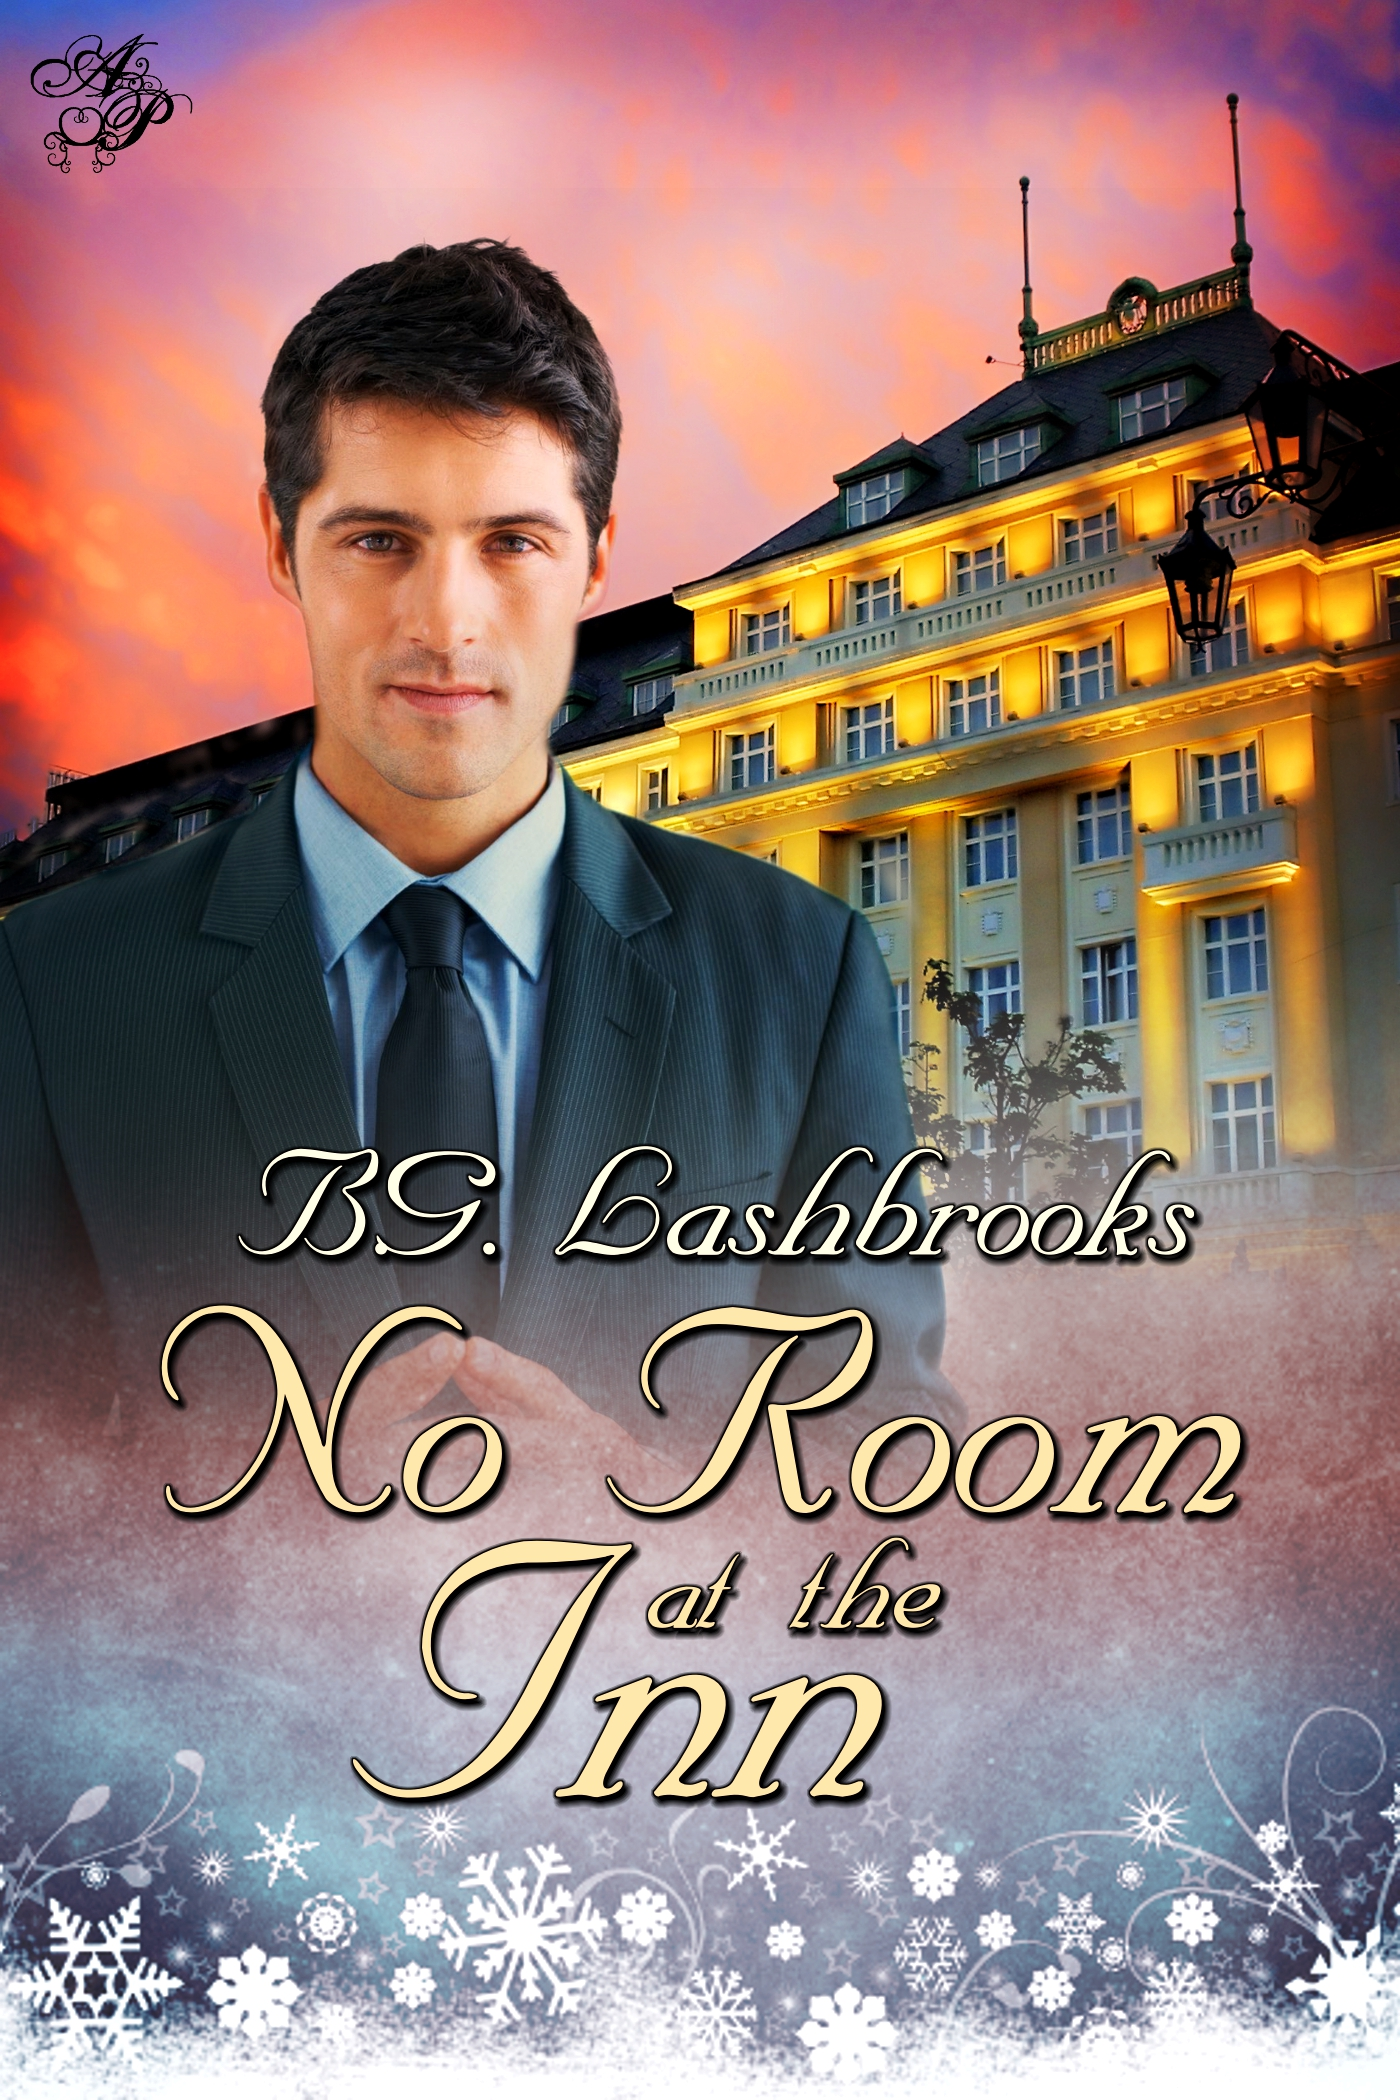 No Room at the Inn By: B.G. Lashbrooks